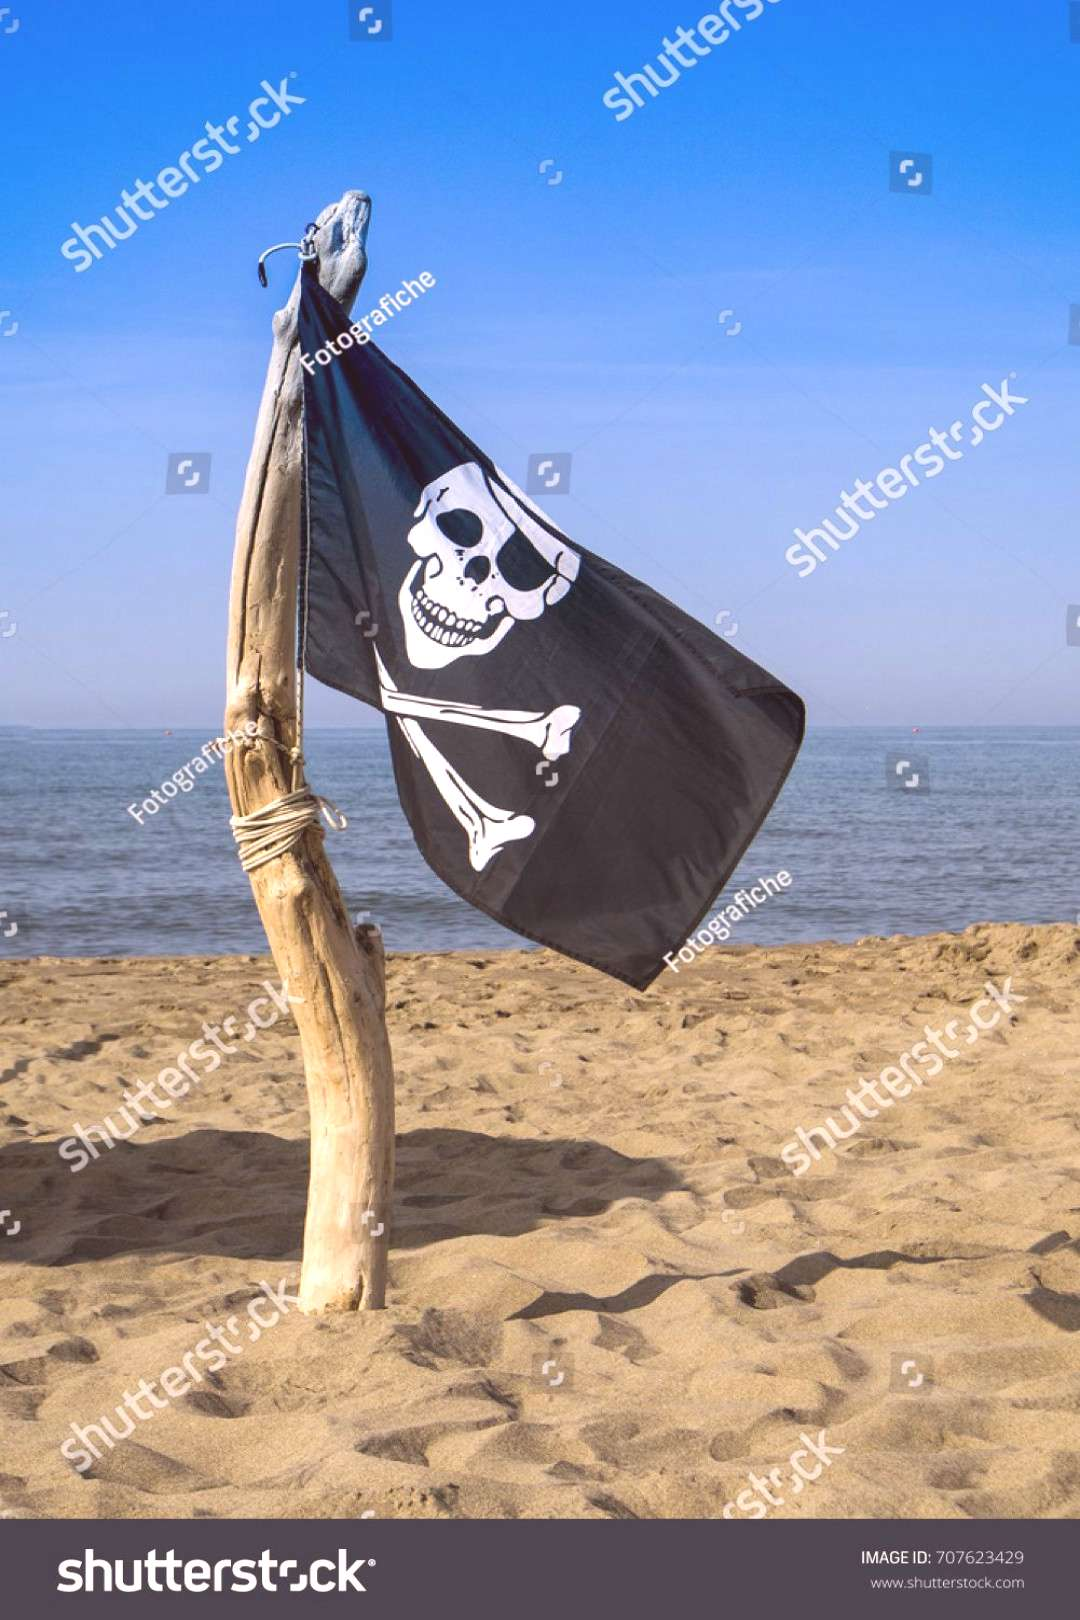 To Hoist the flag of the pirates warning of danger of aggression ,